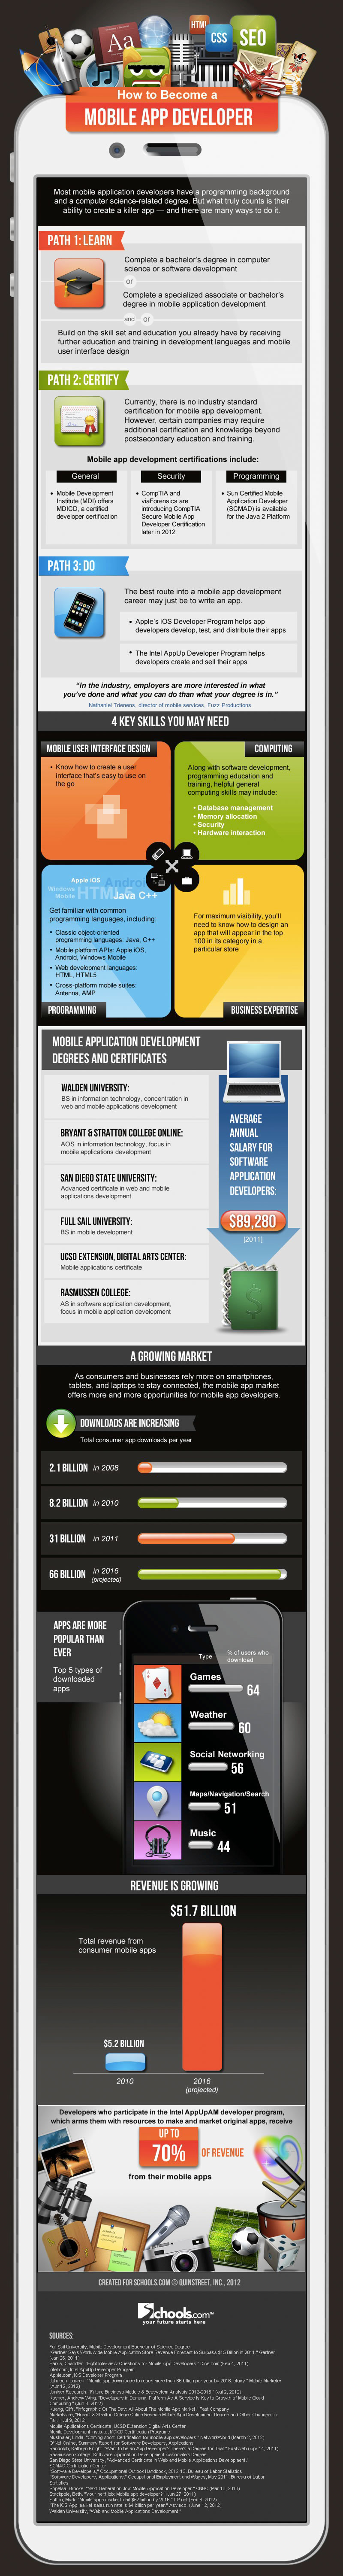 How-To-Become-App-Developer-infographic